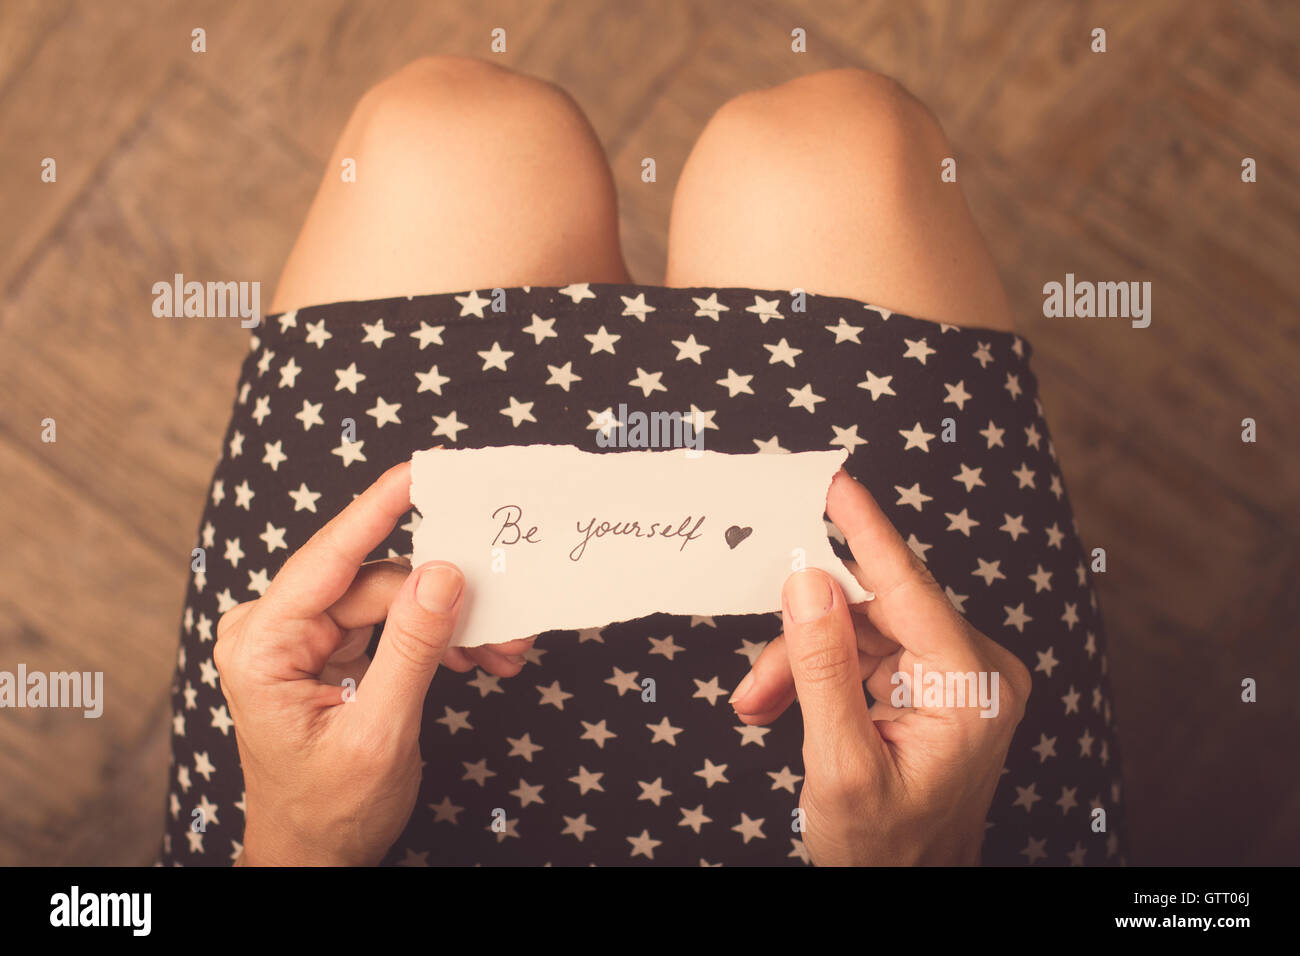 Woman with star patterned dress holding a note with be yourself message on it - Stock Image